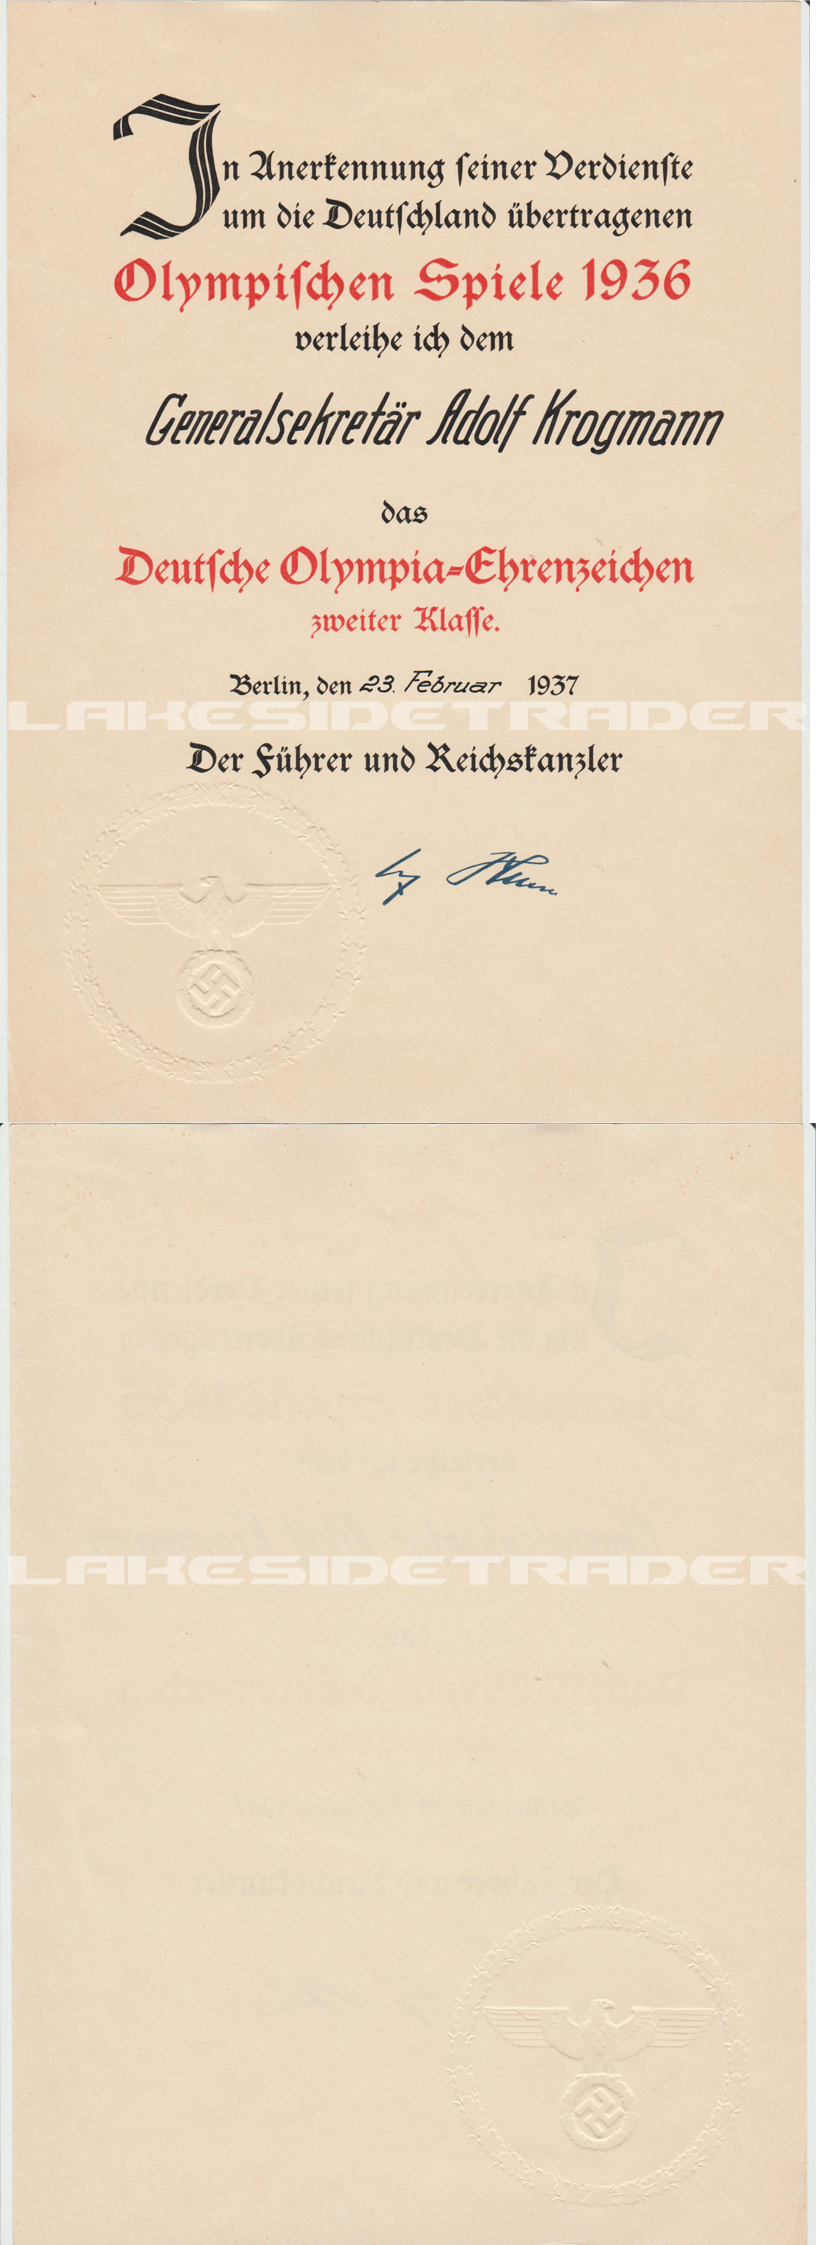 Award Document for the 2nd Class Olympic Medal